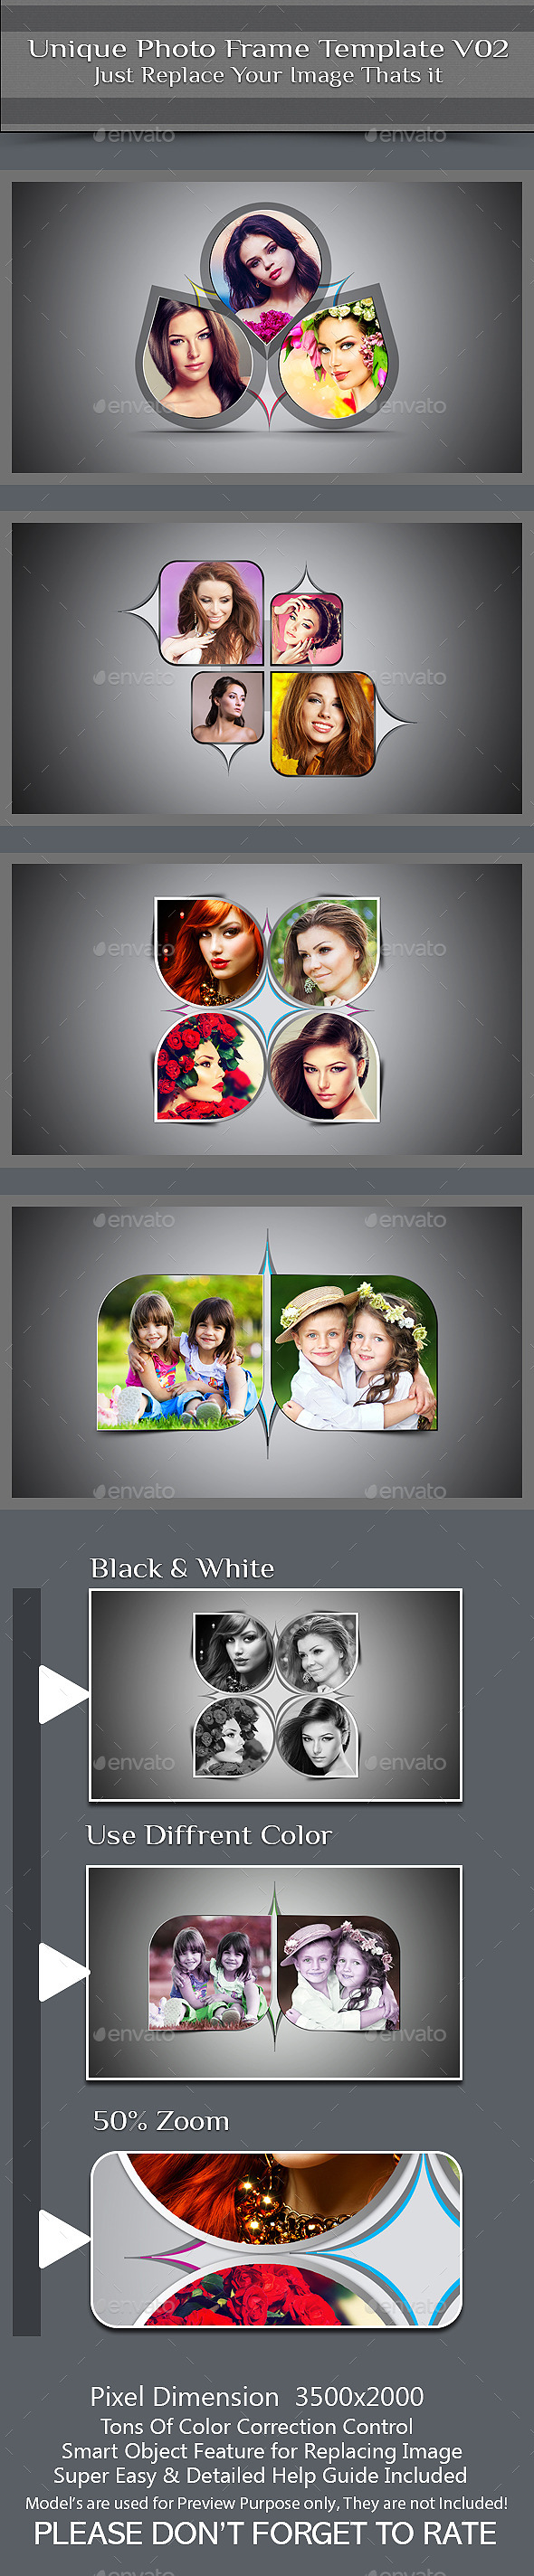 GraphicRiver Unique Photo Frame Template V02 9822476